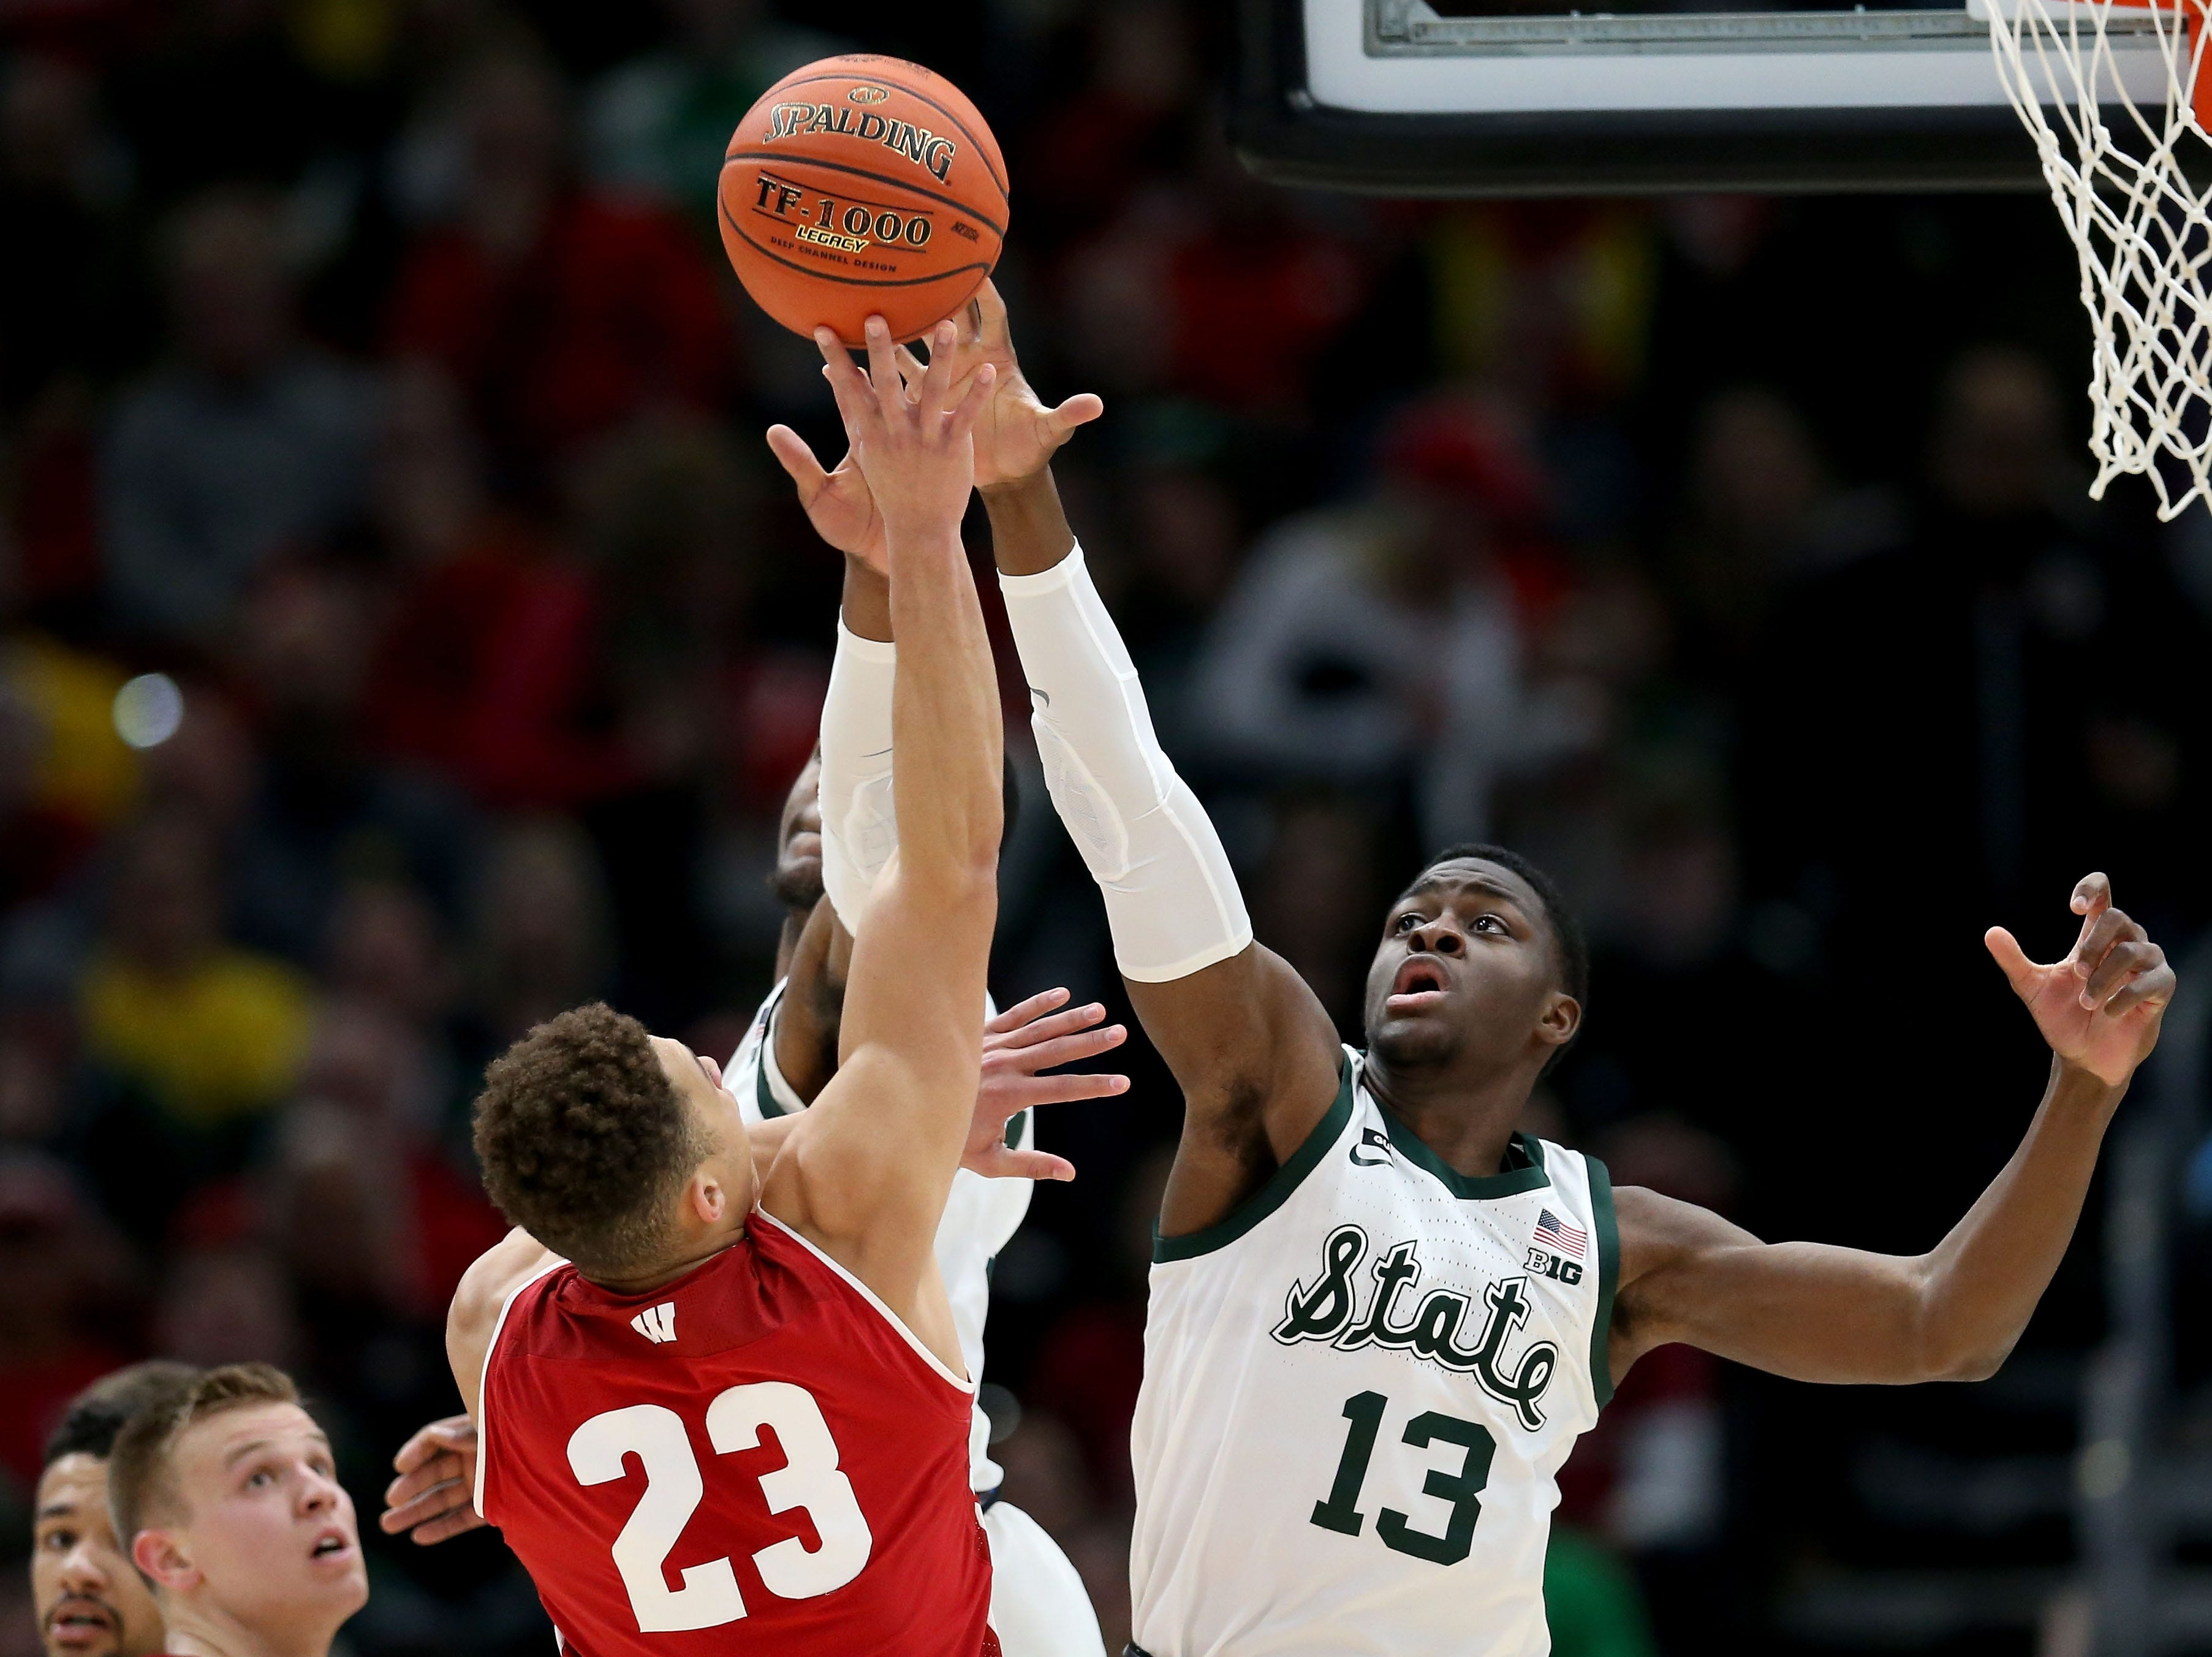 Kobe King #23 of the Wisconsin Badgers attempts a shot while being guarded by Gabe Brown #13 of the Michigan State Spartans in the first half during the semifinals of the Big Ten Basketball Tournament at the United Center on March 16, 2019 in Chicago, Illinois.